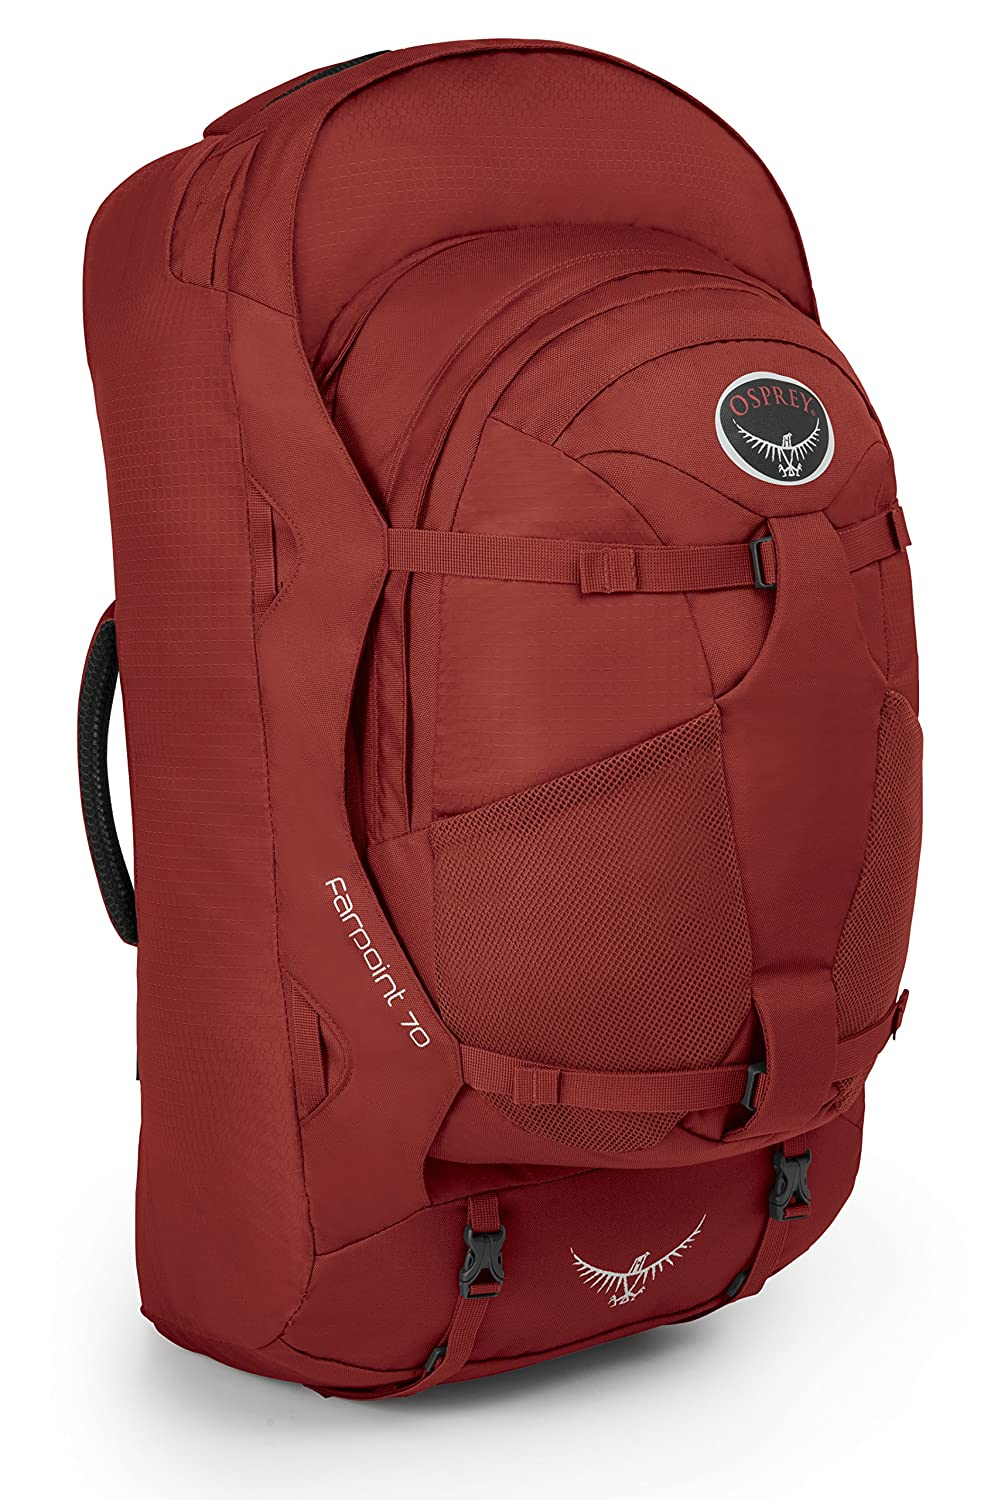 Osprey Packs Farpoint 70 Travel Backpack 10000285-P